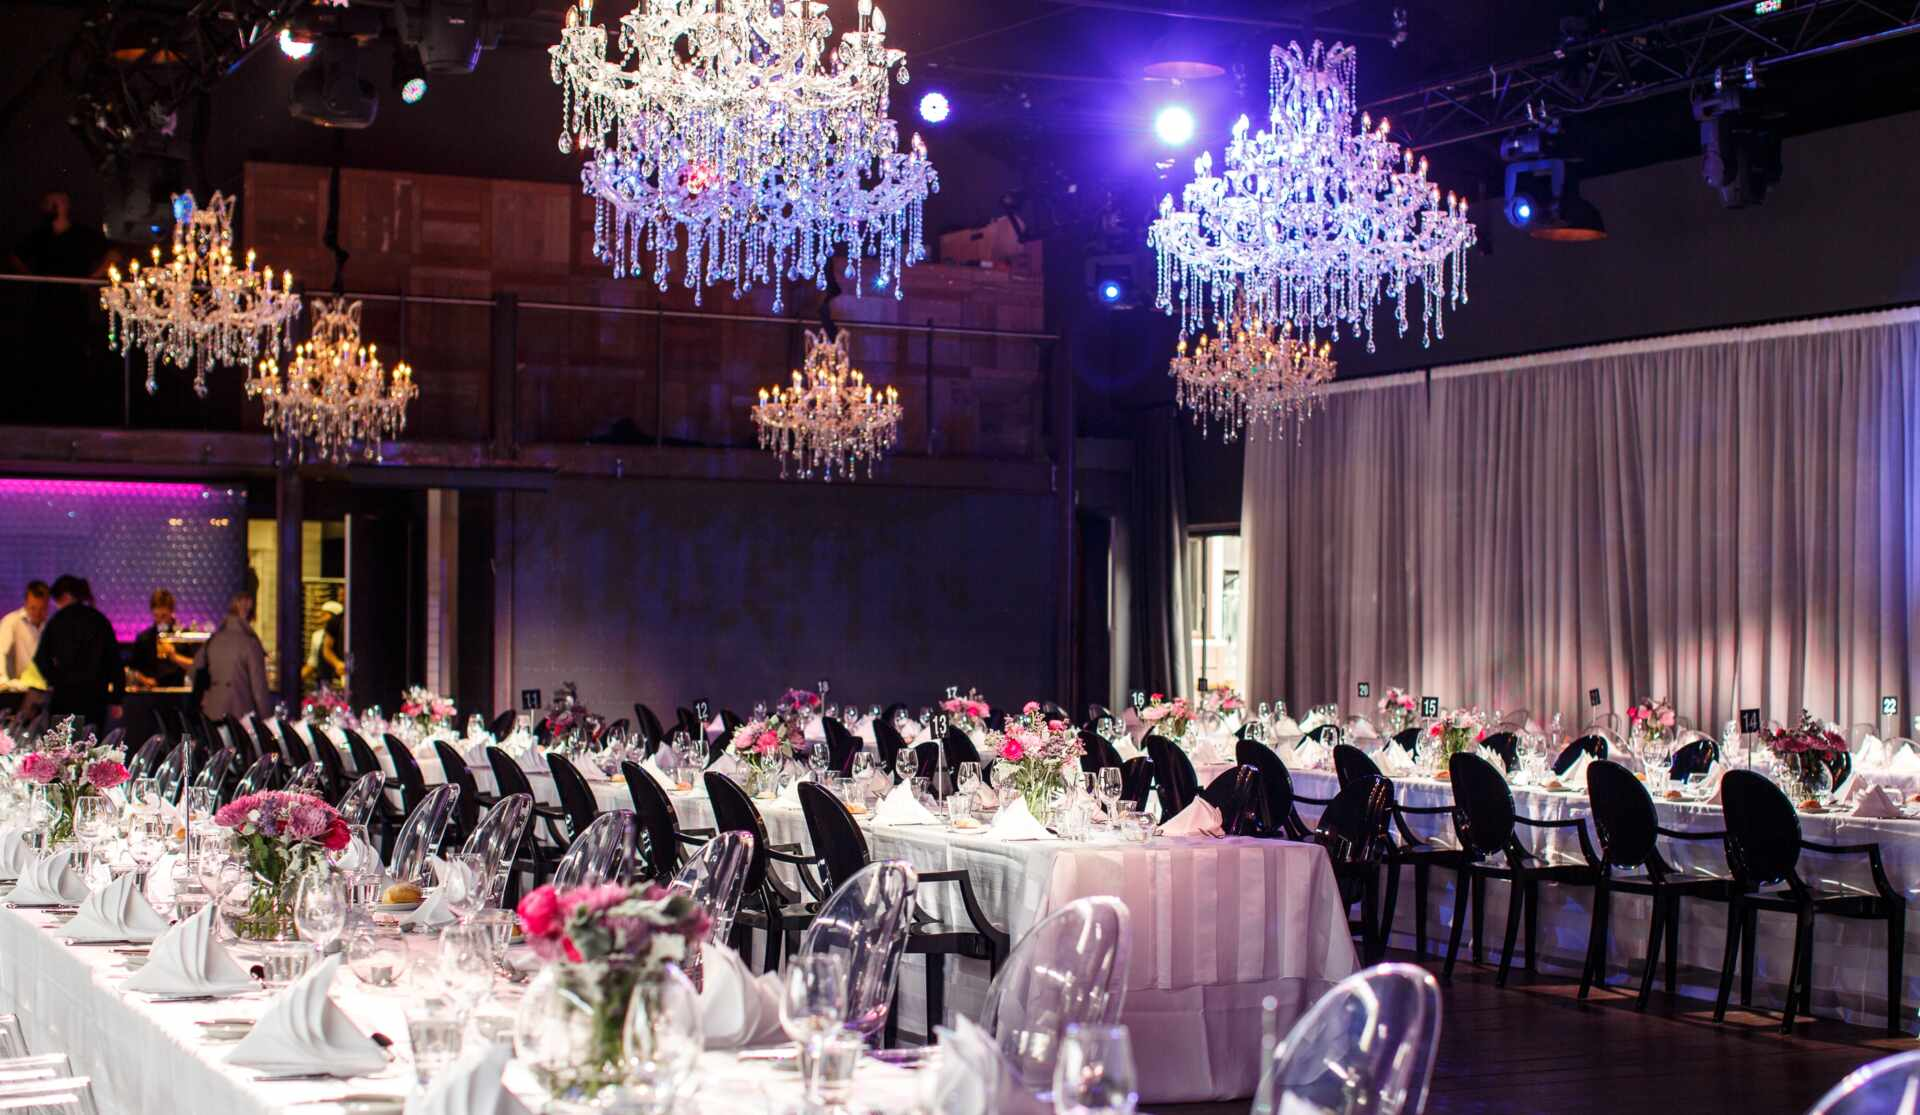 Chandelier hire melbourne action events for larger spaces we have a matching pair of exquisite chandeliers measuring 1300mm x 1500mm height x diametre and are a real statement chandelier arubaitofo Choice Image